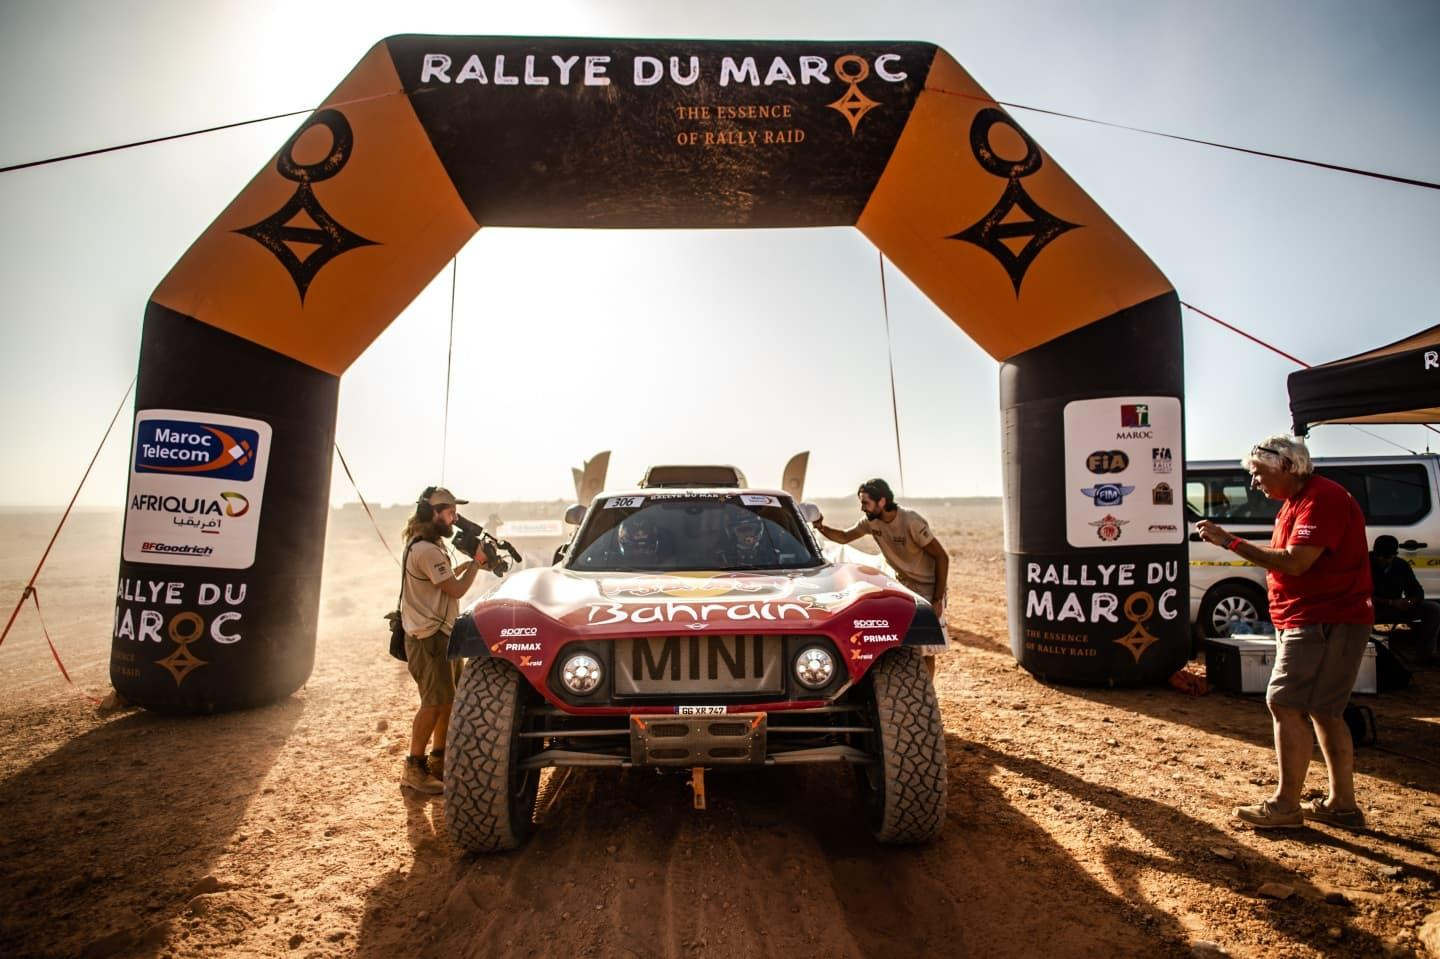 mini-x-raid-2020-dakar-peterhansel-sainz-2